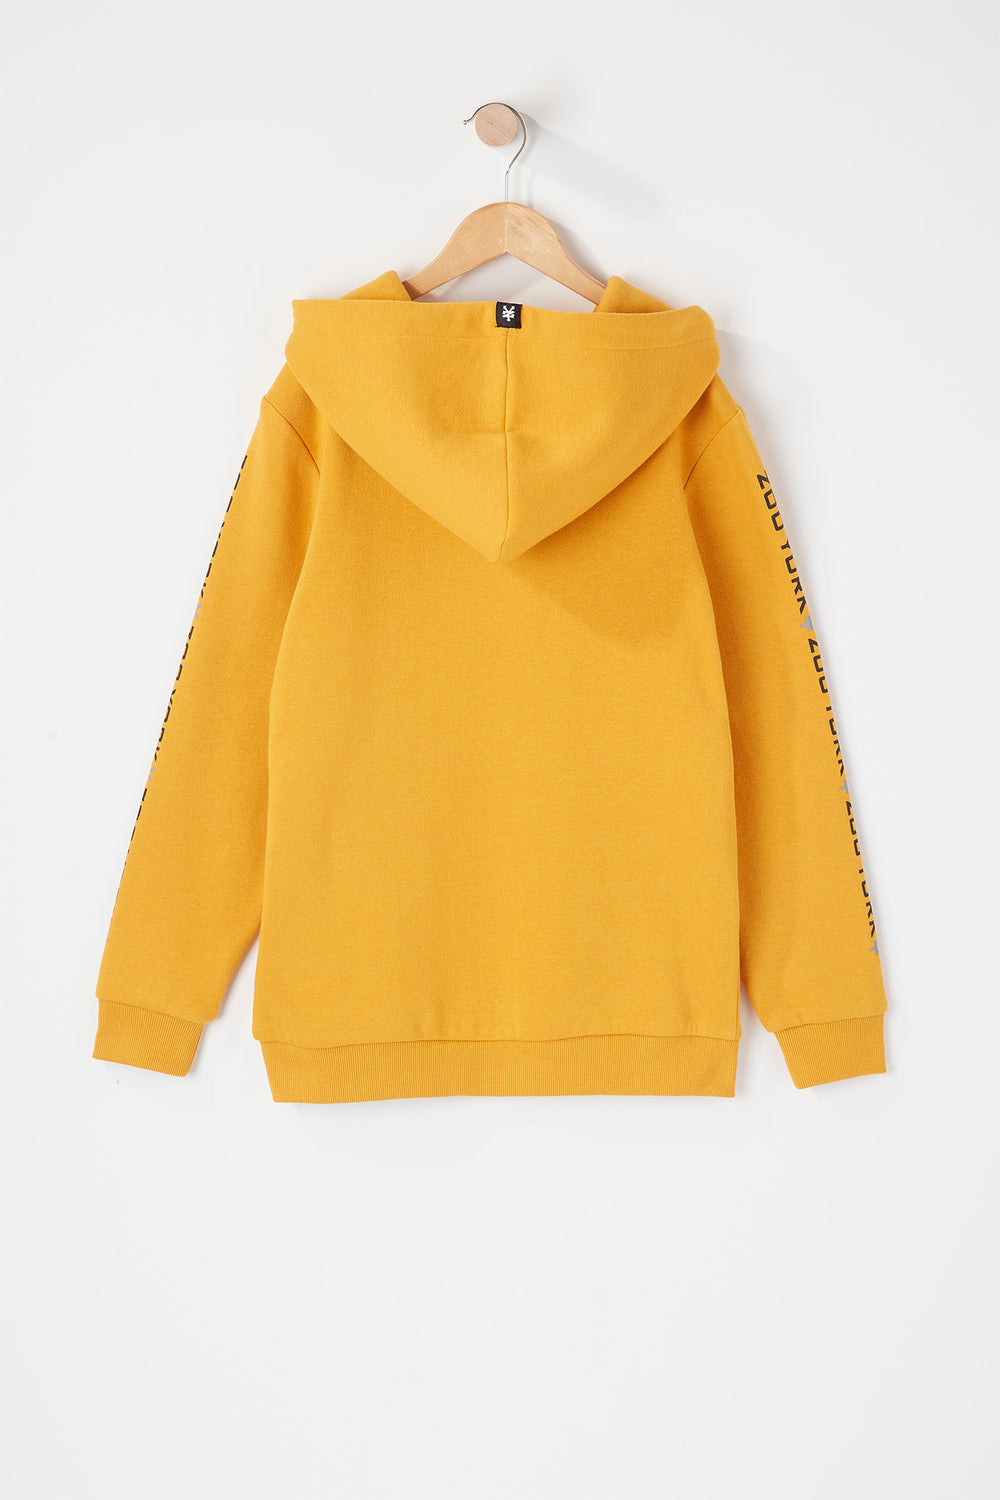 Zoo York Youth Box Logo Popover Hoodie Gold